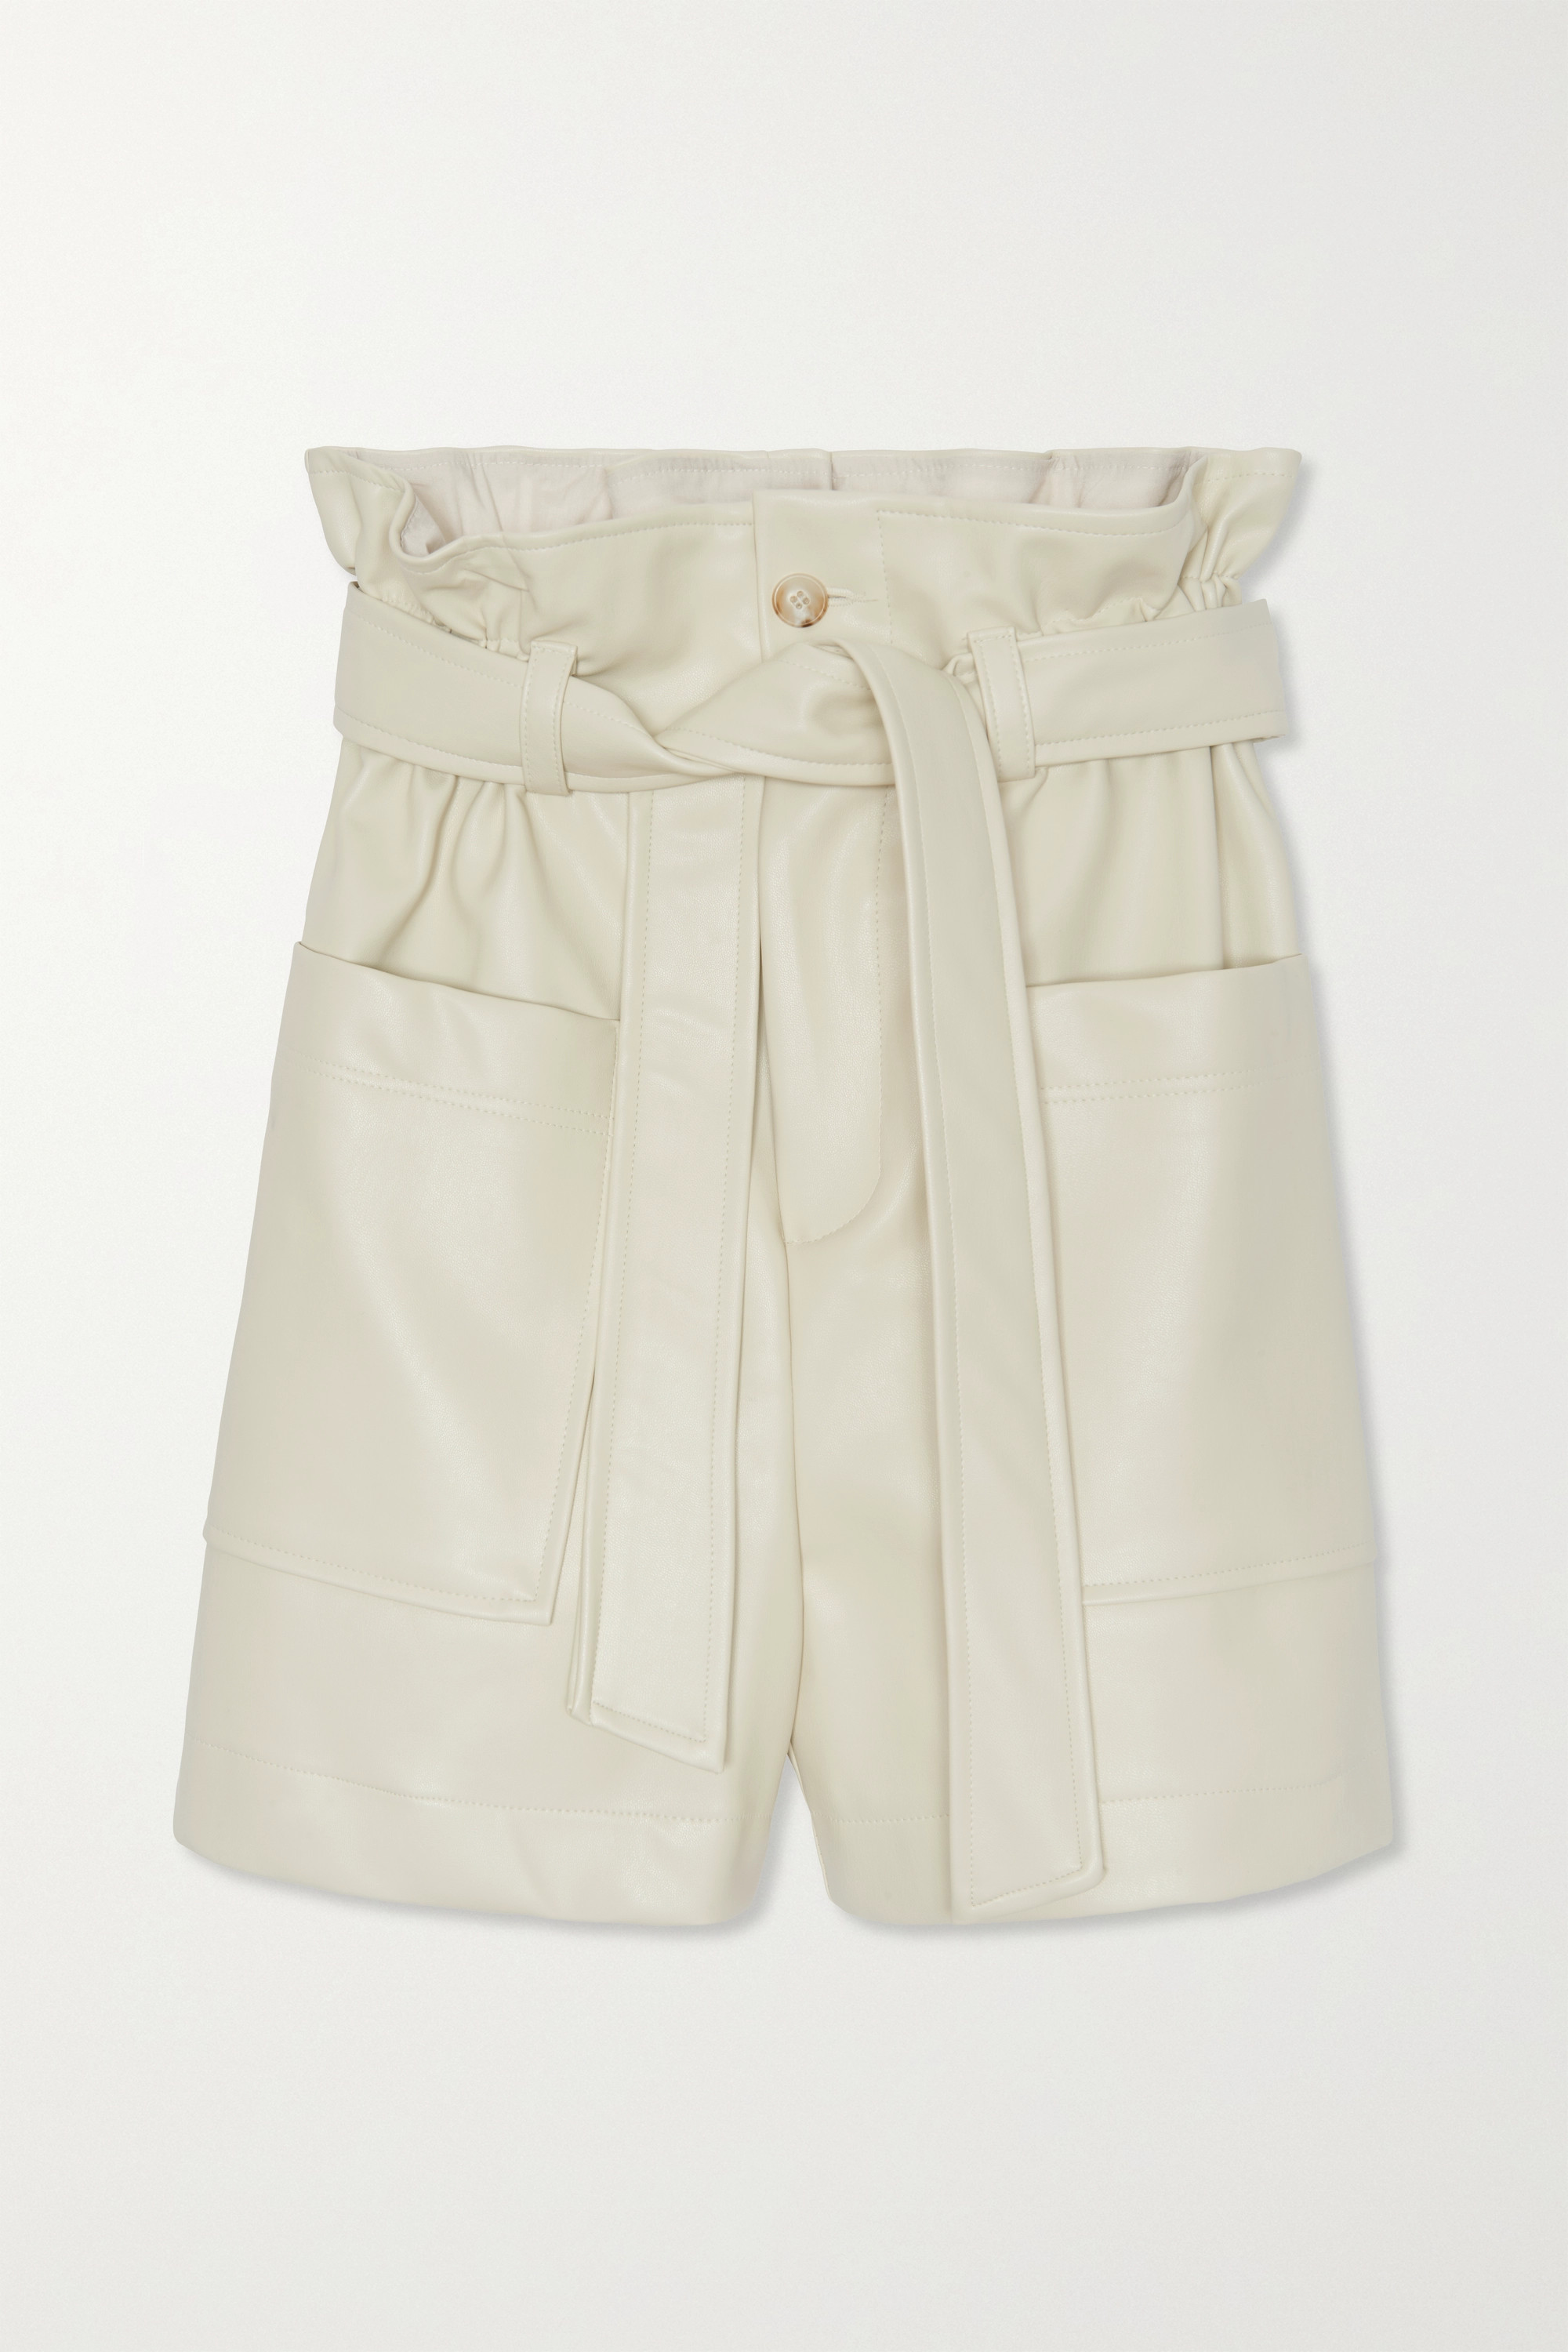 Frankie Shop Alex belted faux leather shorts